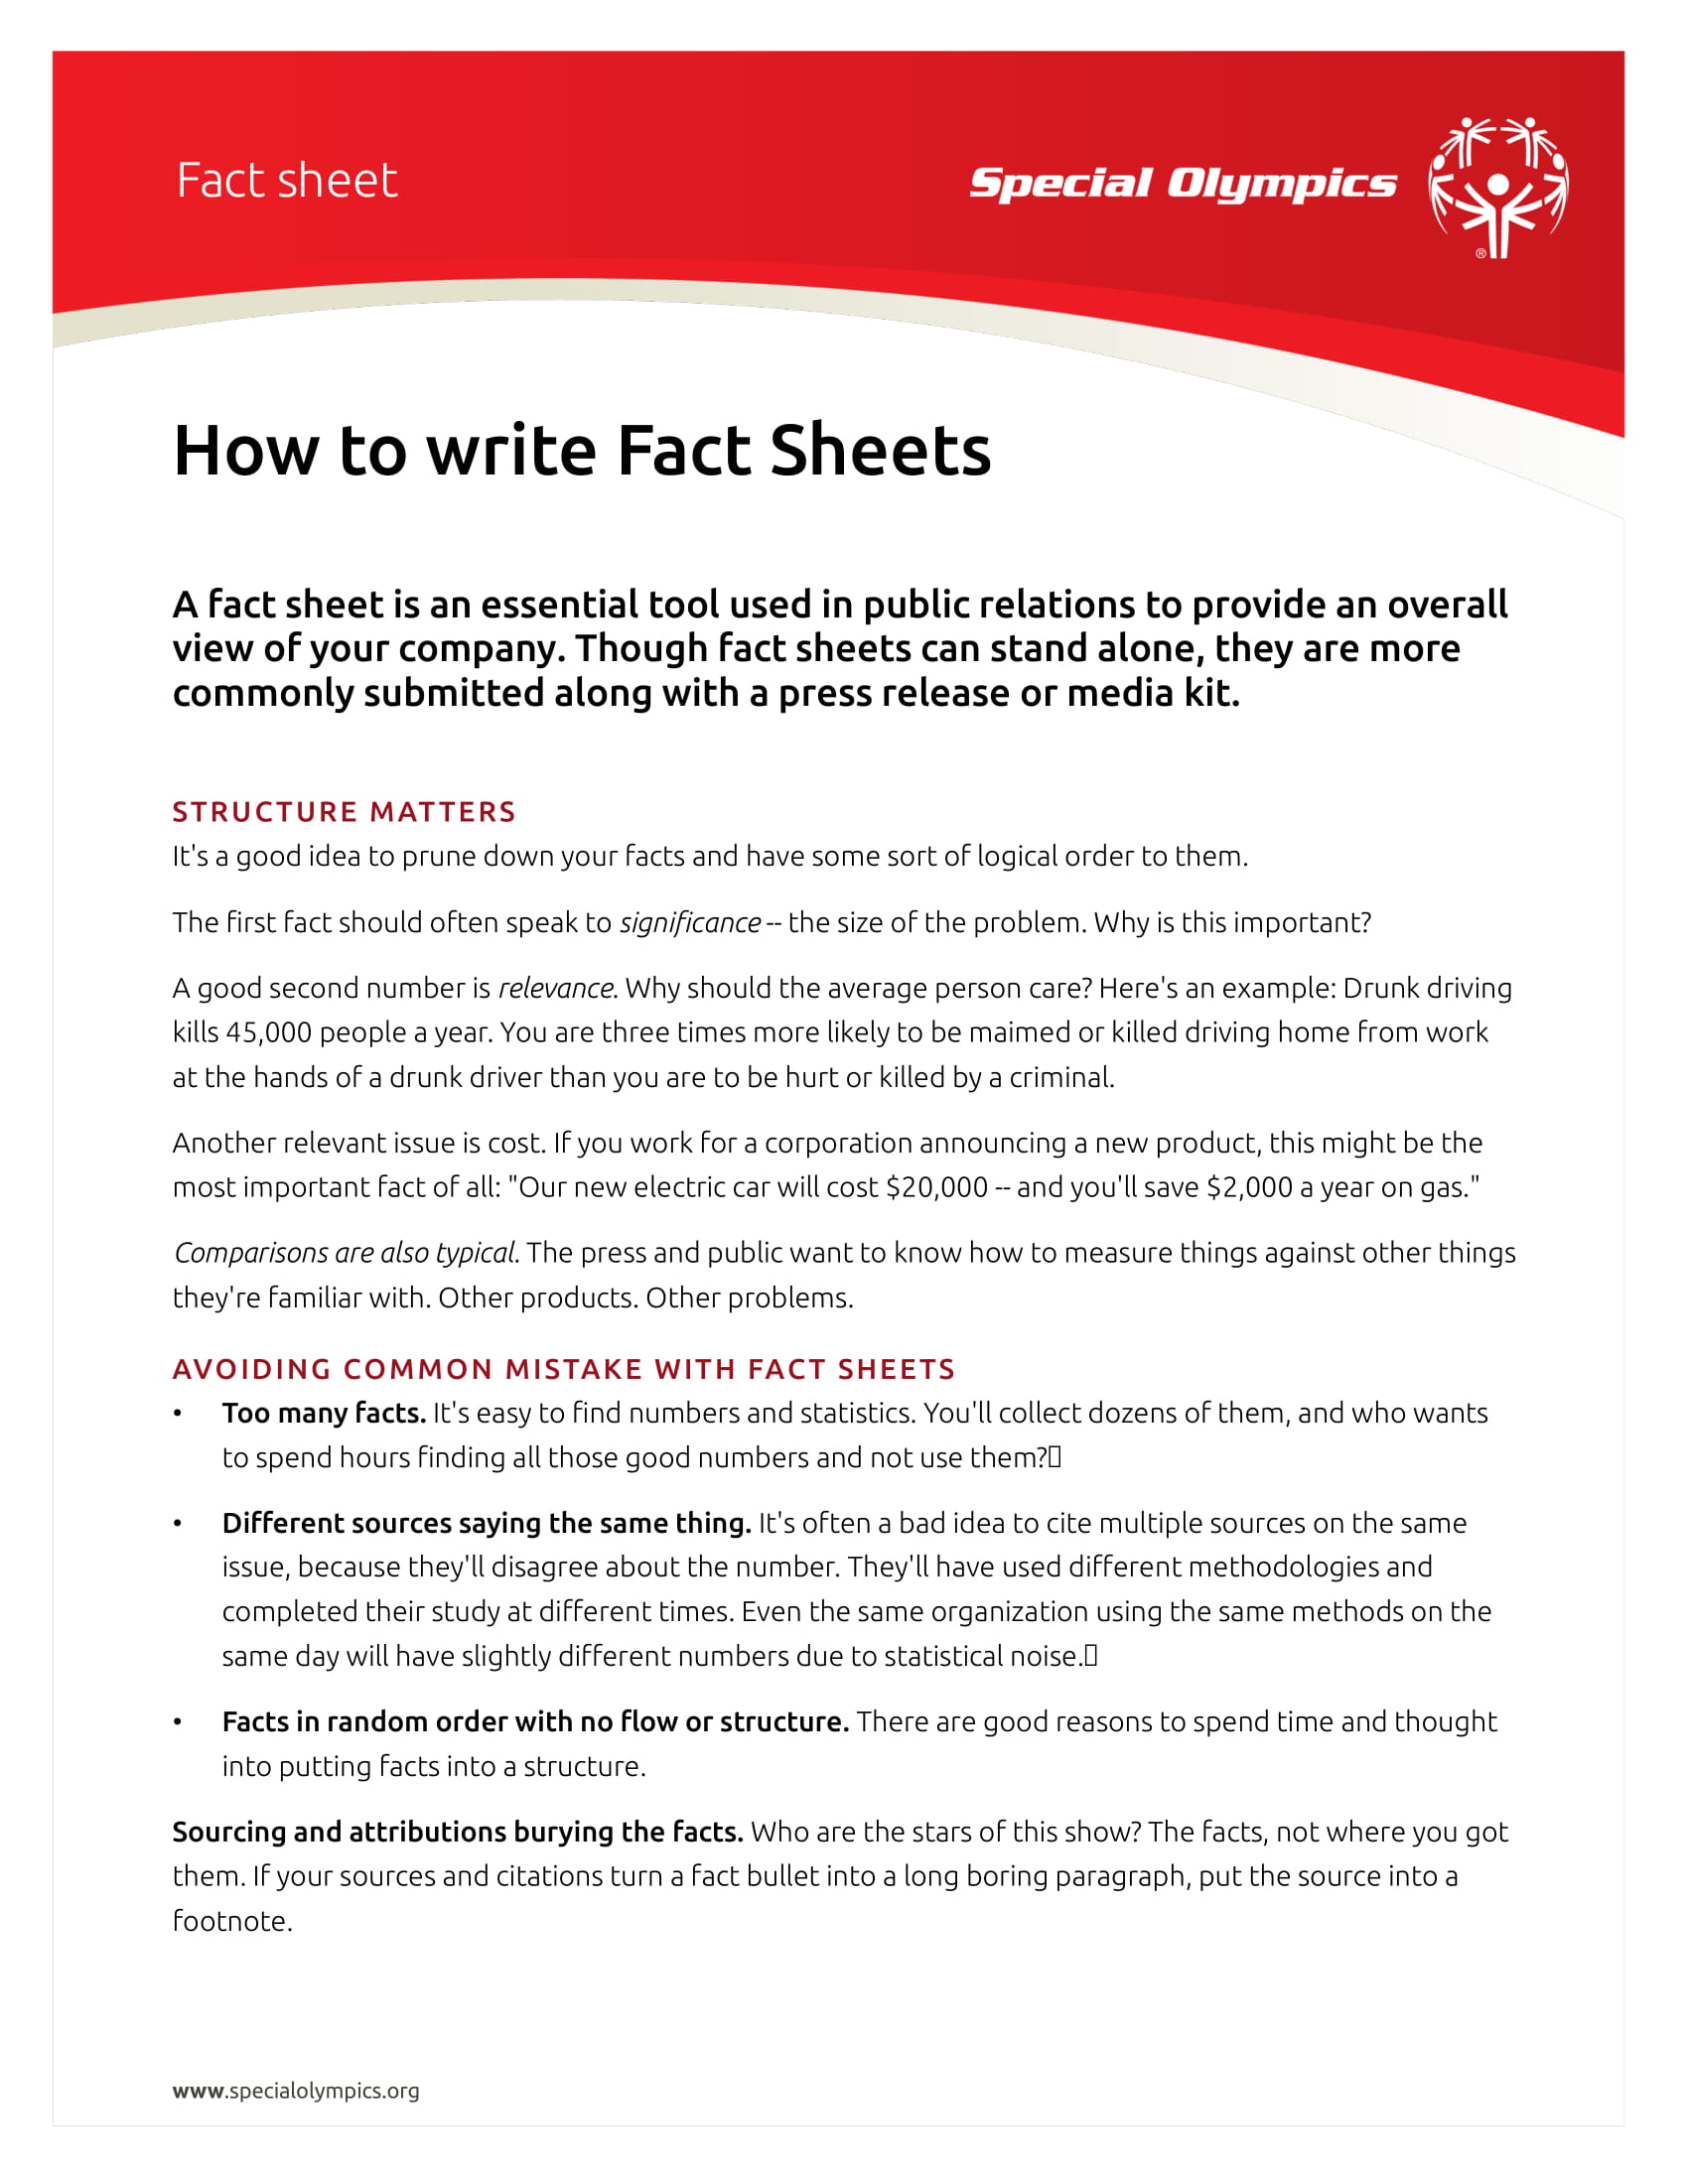 fact sheet template 1